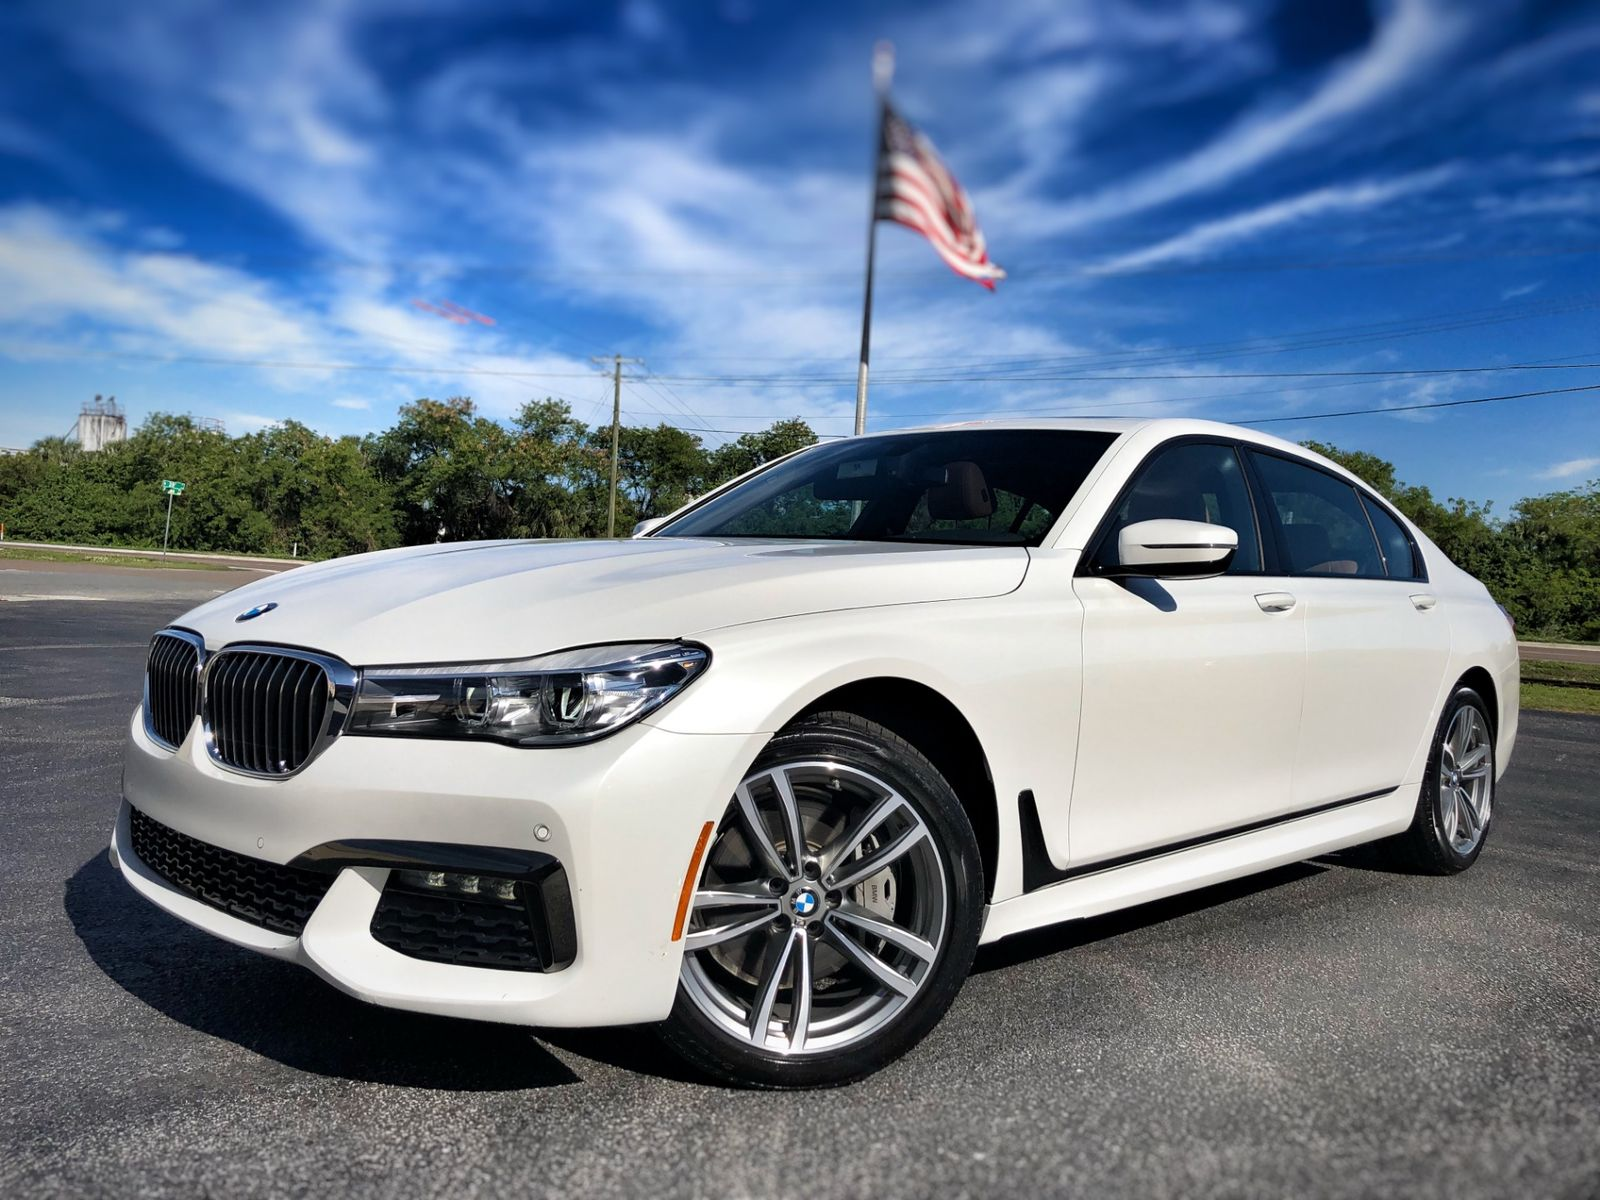 2018 bmw 740i m sport 1 owner pano roof carfax cert 88k florida bayshore automotive  [ 1600 x 1200 Pixel ]